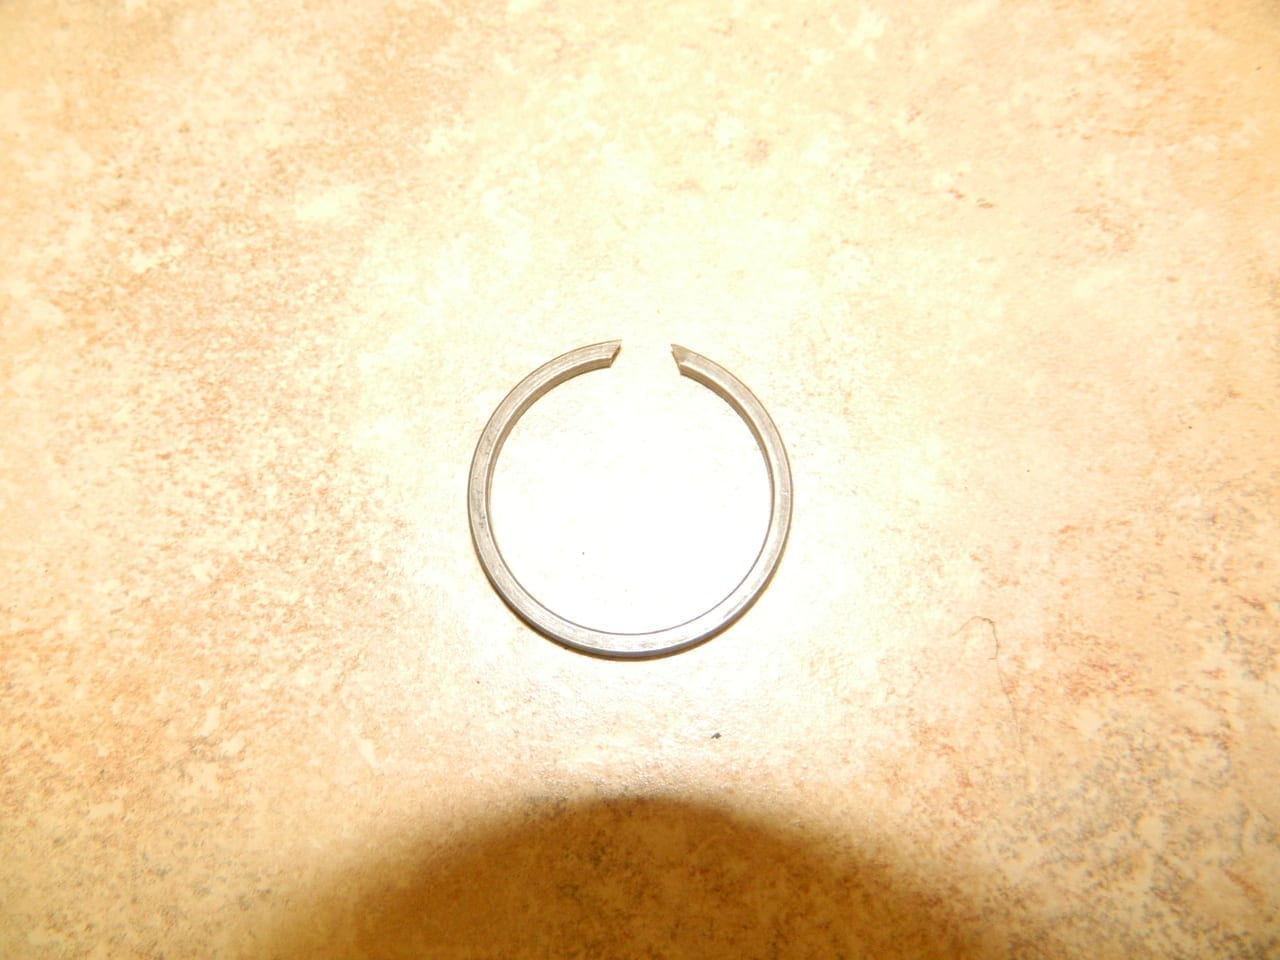 Snap Ring NV4500 Countershaft 5th gear clutch wide